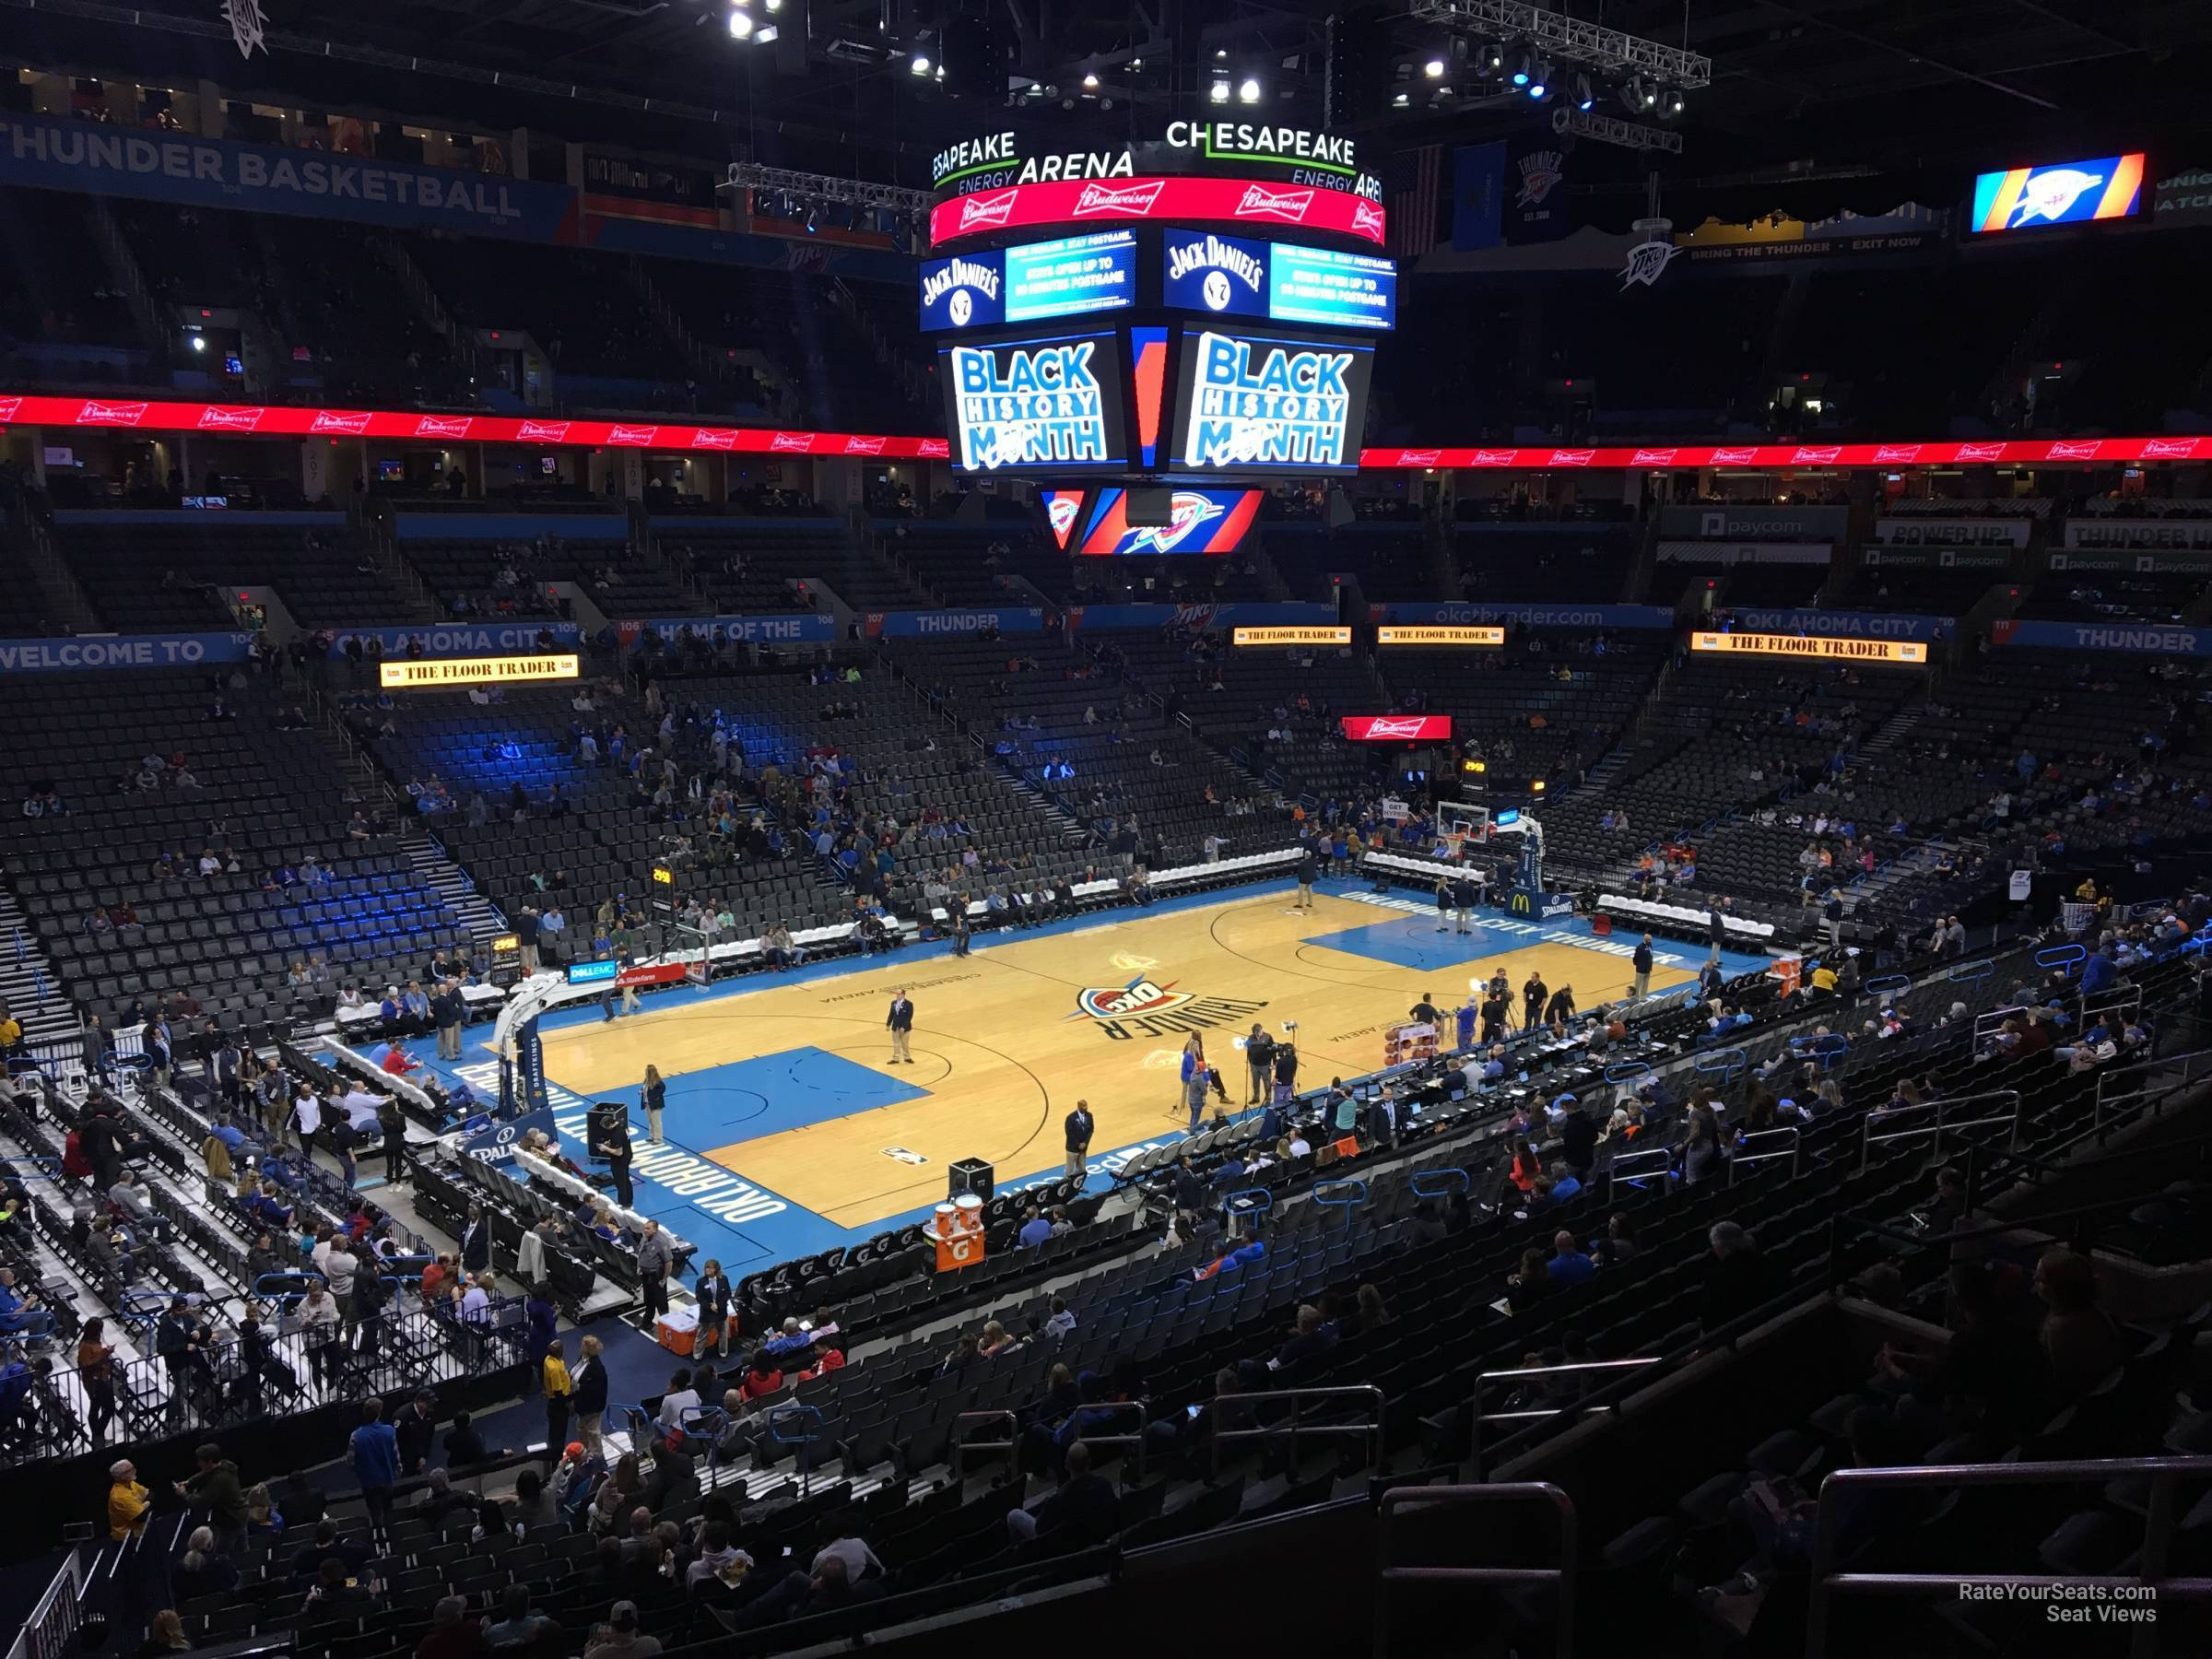 Seat View for Chesapeake Energy Arena Section 226, Row H